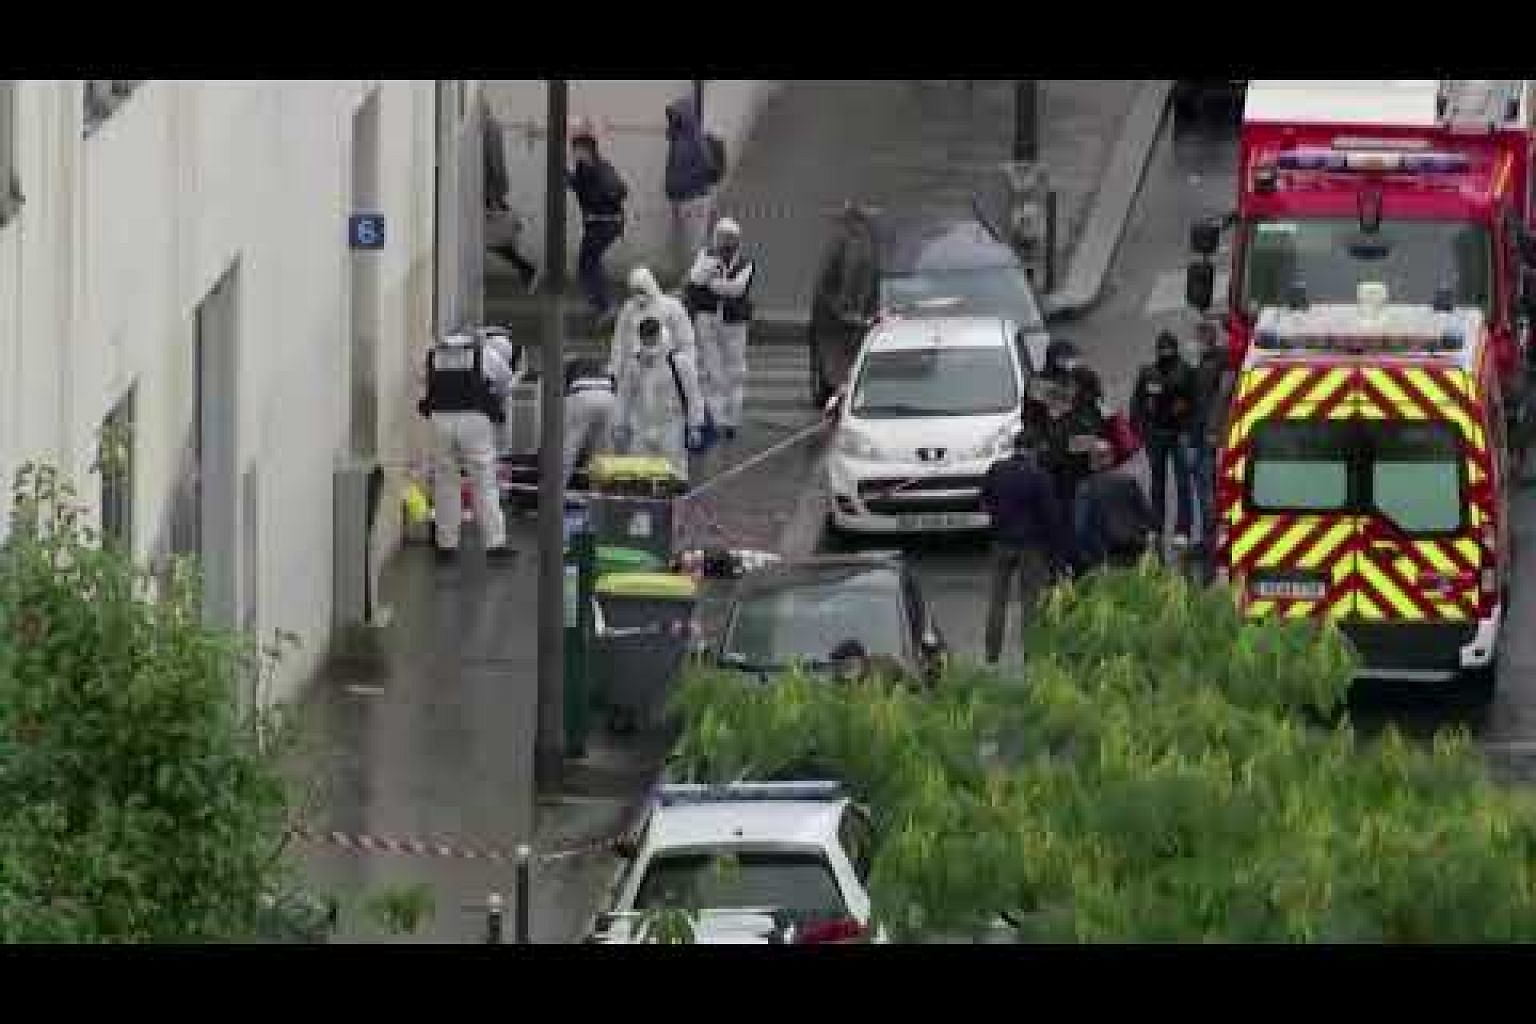 Paris knife attack suspect says he targeted Charlie Hebdo